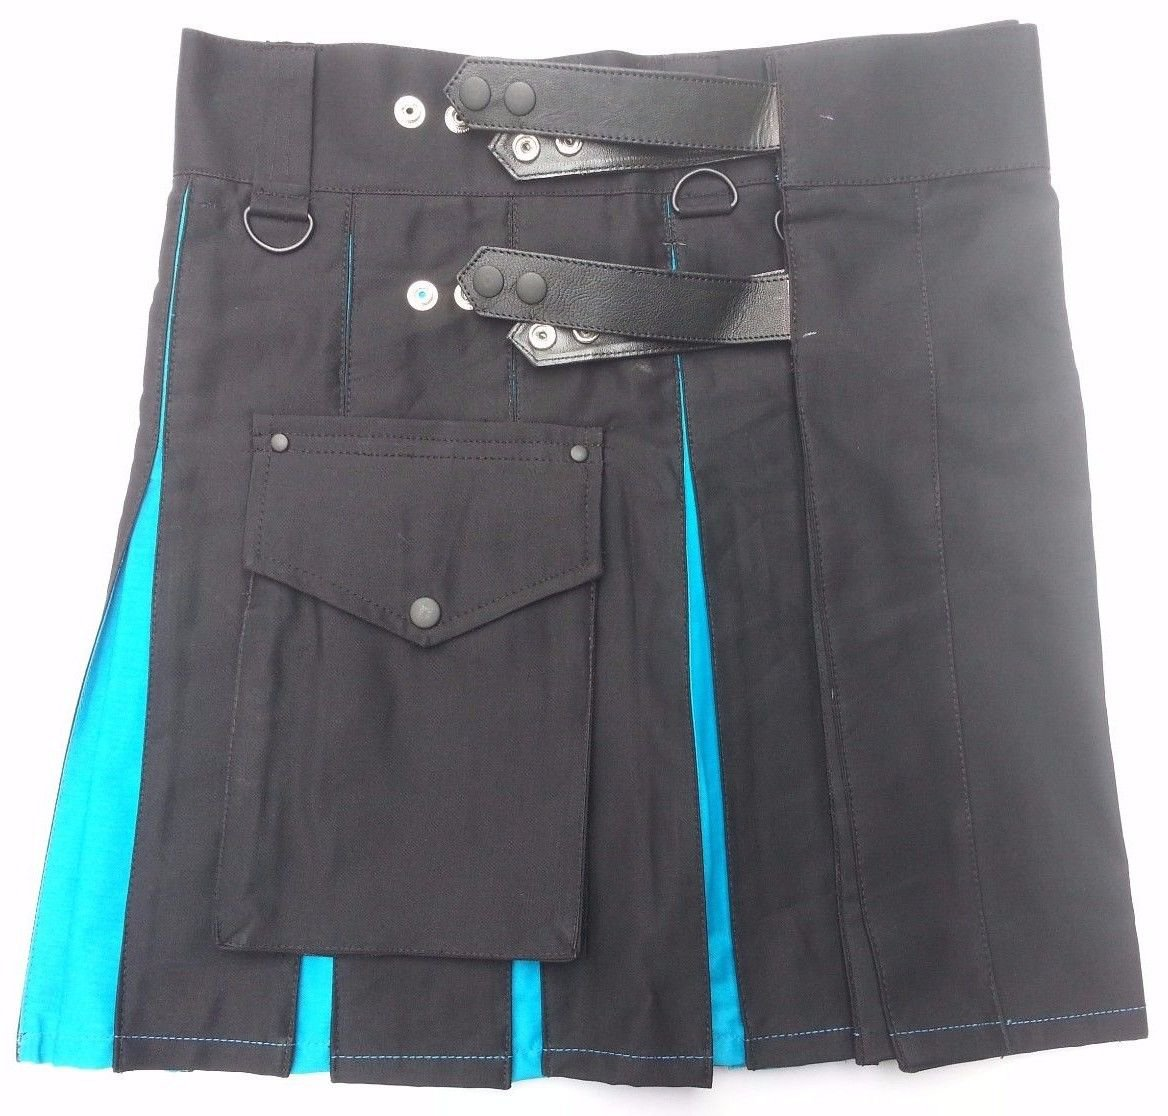 "38"" Ladies TDK Black & Blue Cotton Hybrid Kilt, Leather Straps Tactical Duty Kilt Black/Blue Cotton"